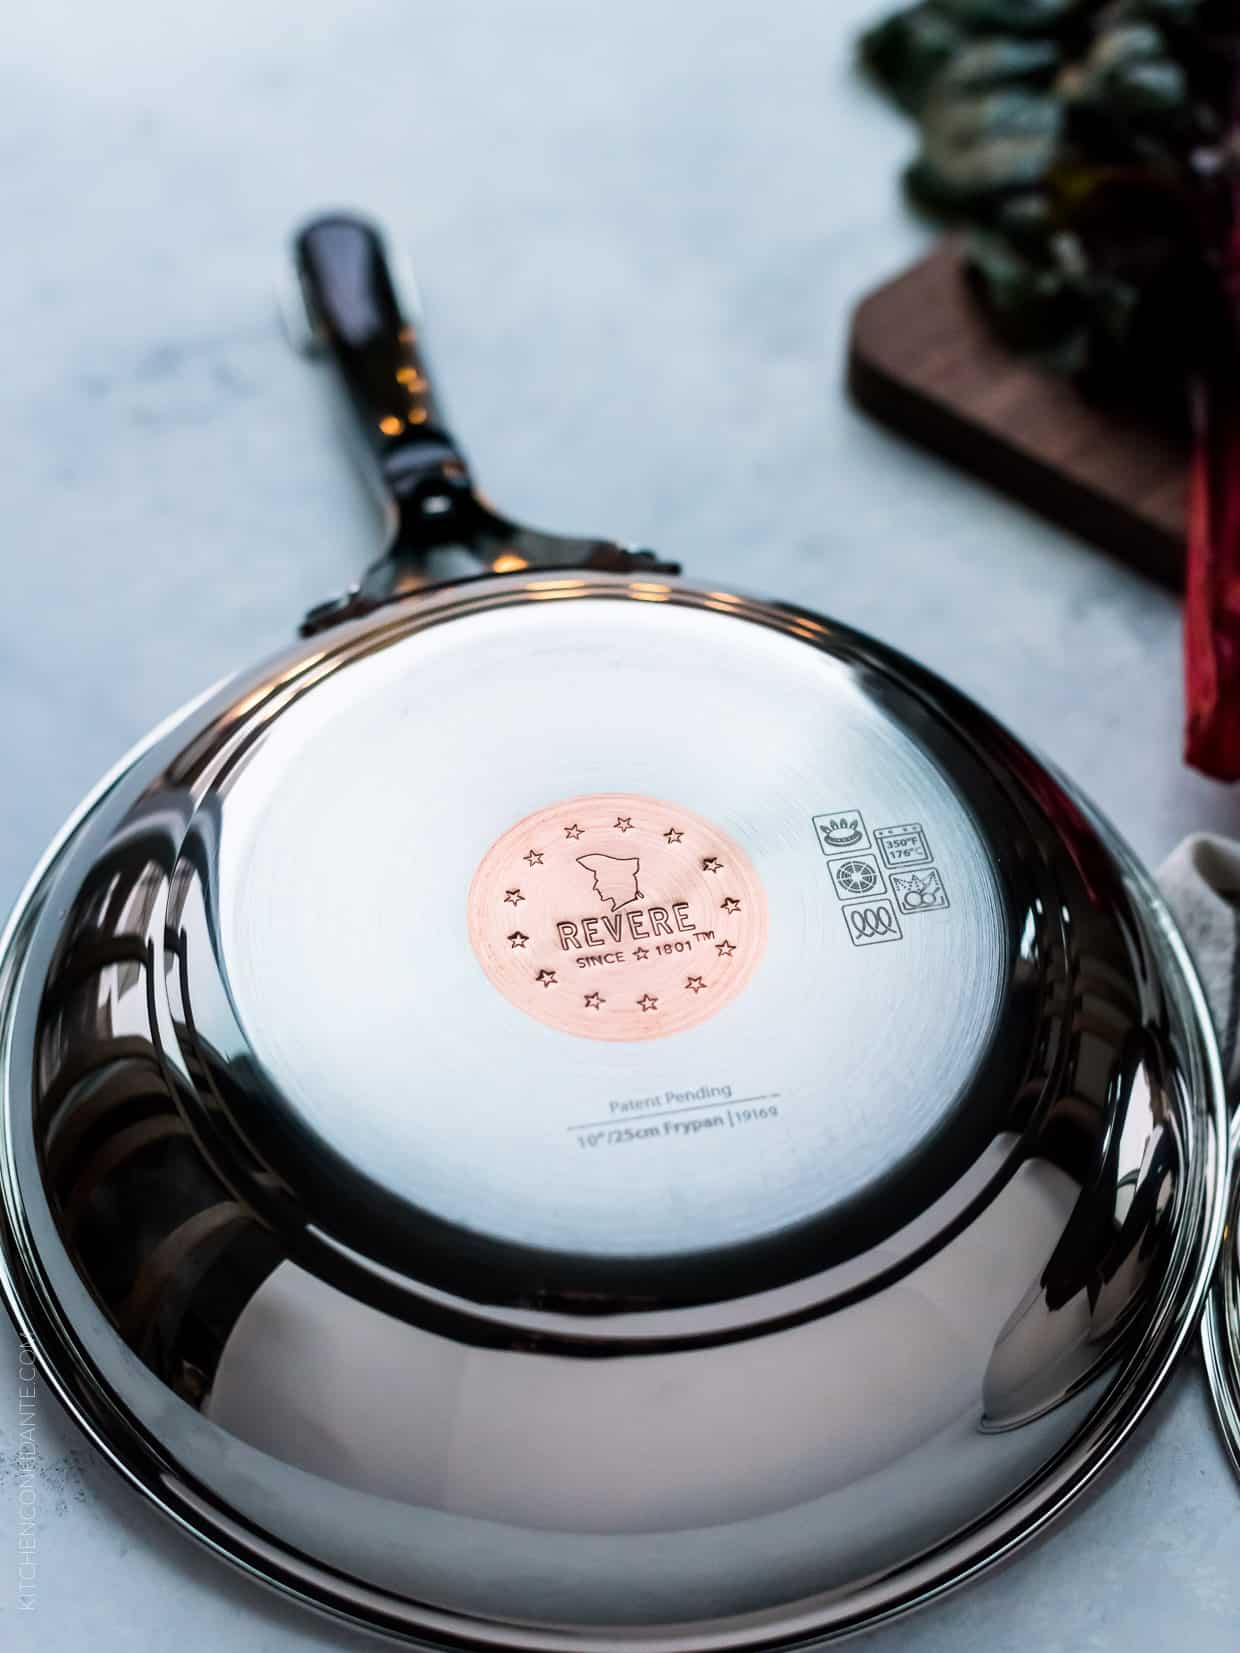 Revere Cookware with copper disk for quick heating.